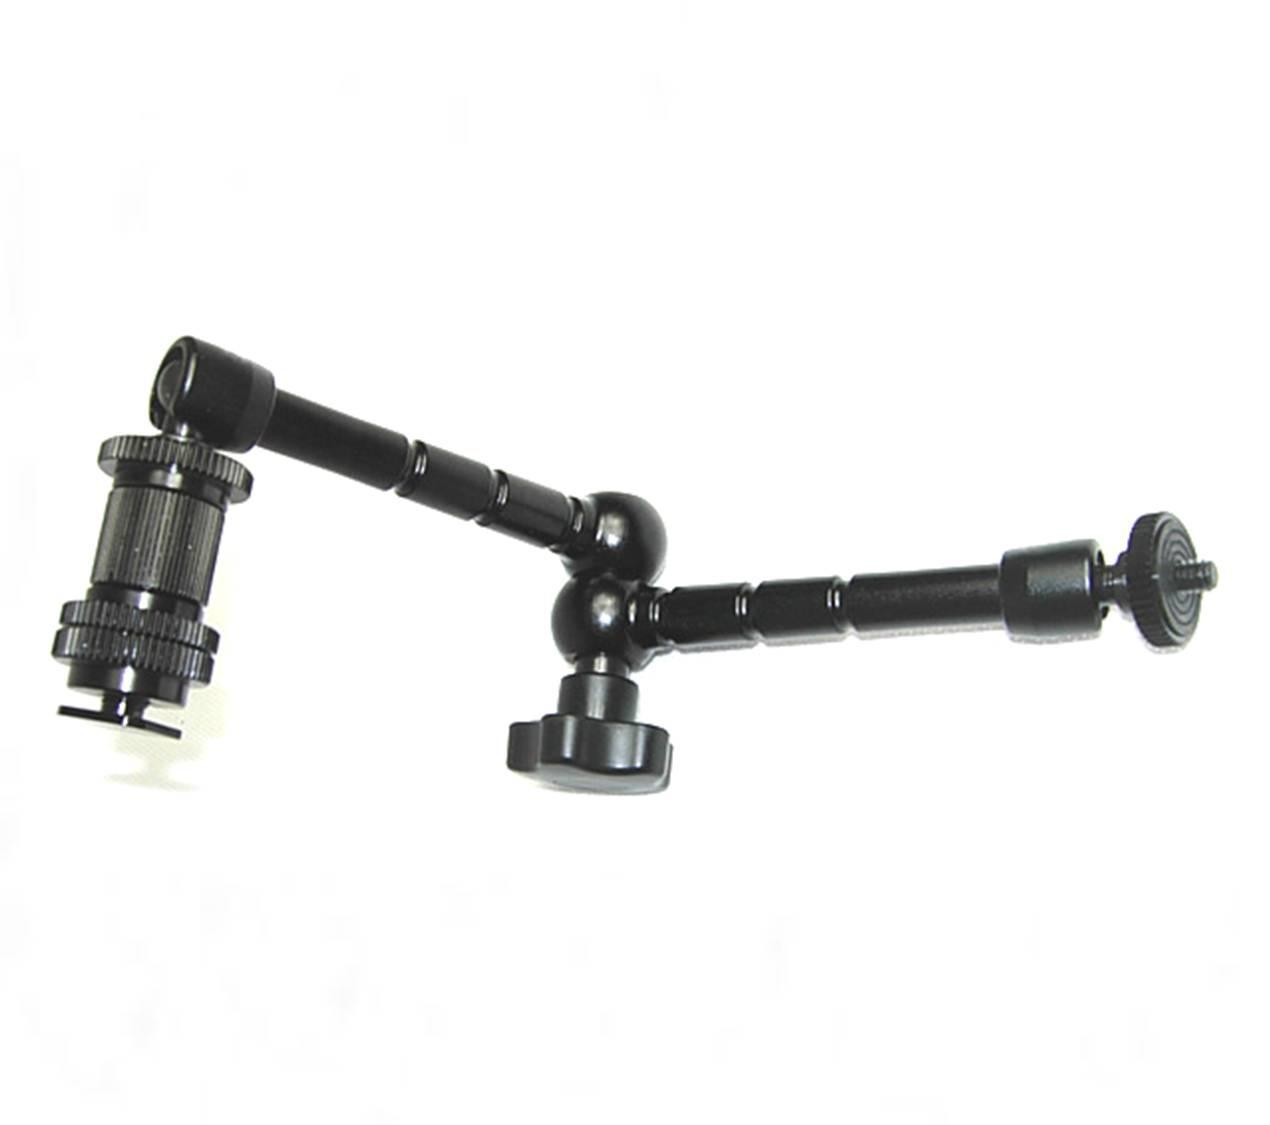 Articulating Magic Arm 11 '' Inch + Super Clamp DSLR Camera Rig Led Light Lcd Field Monitor